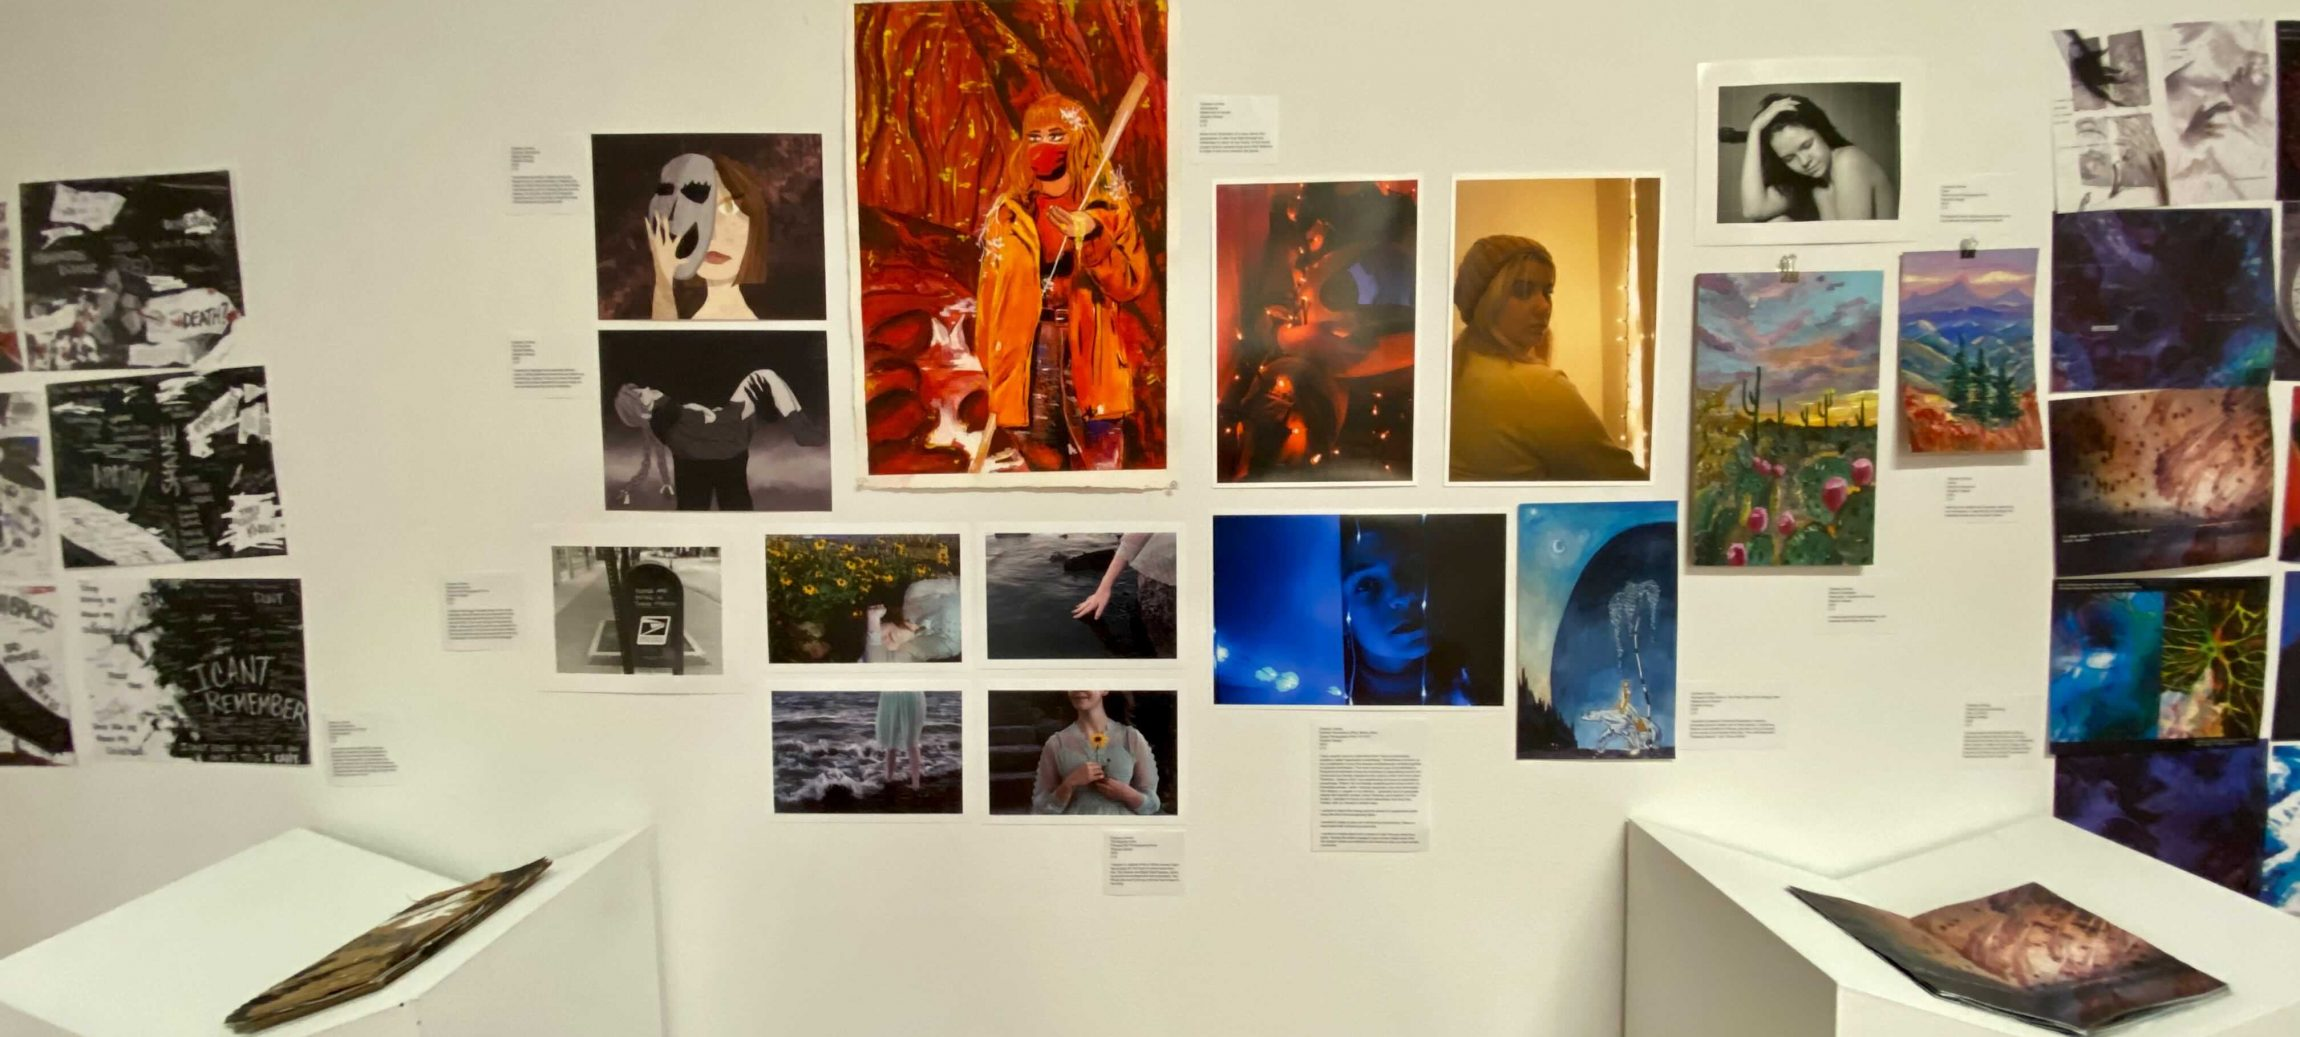 Fall 2021 BFA Exhibition running now! image